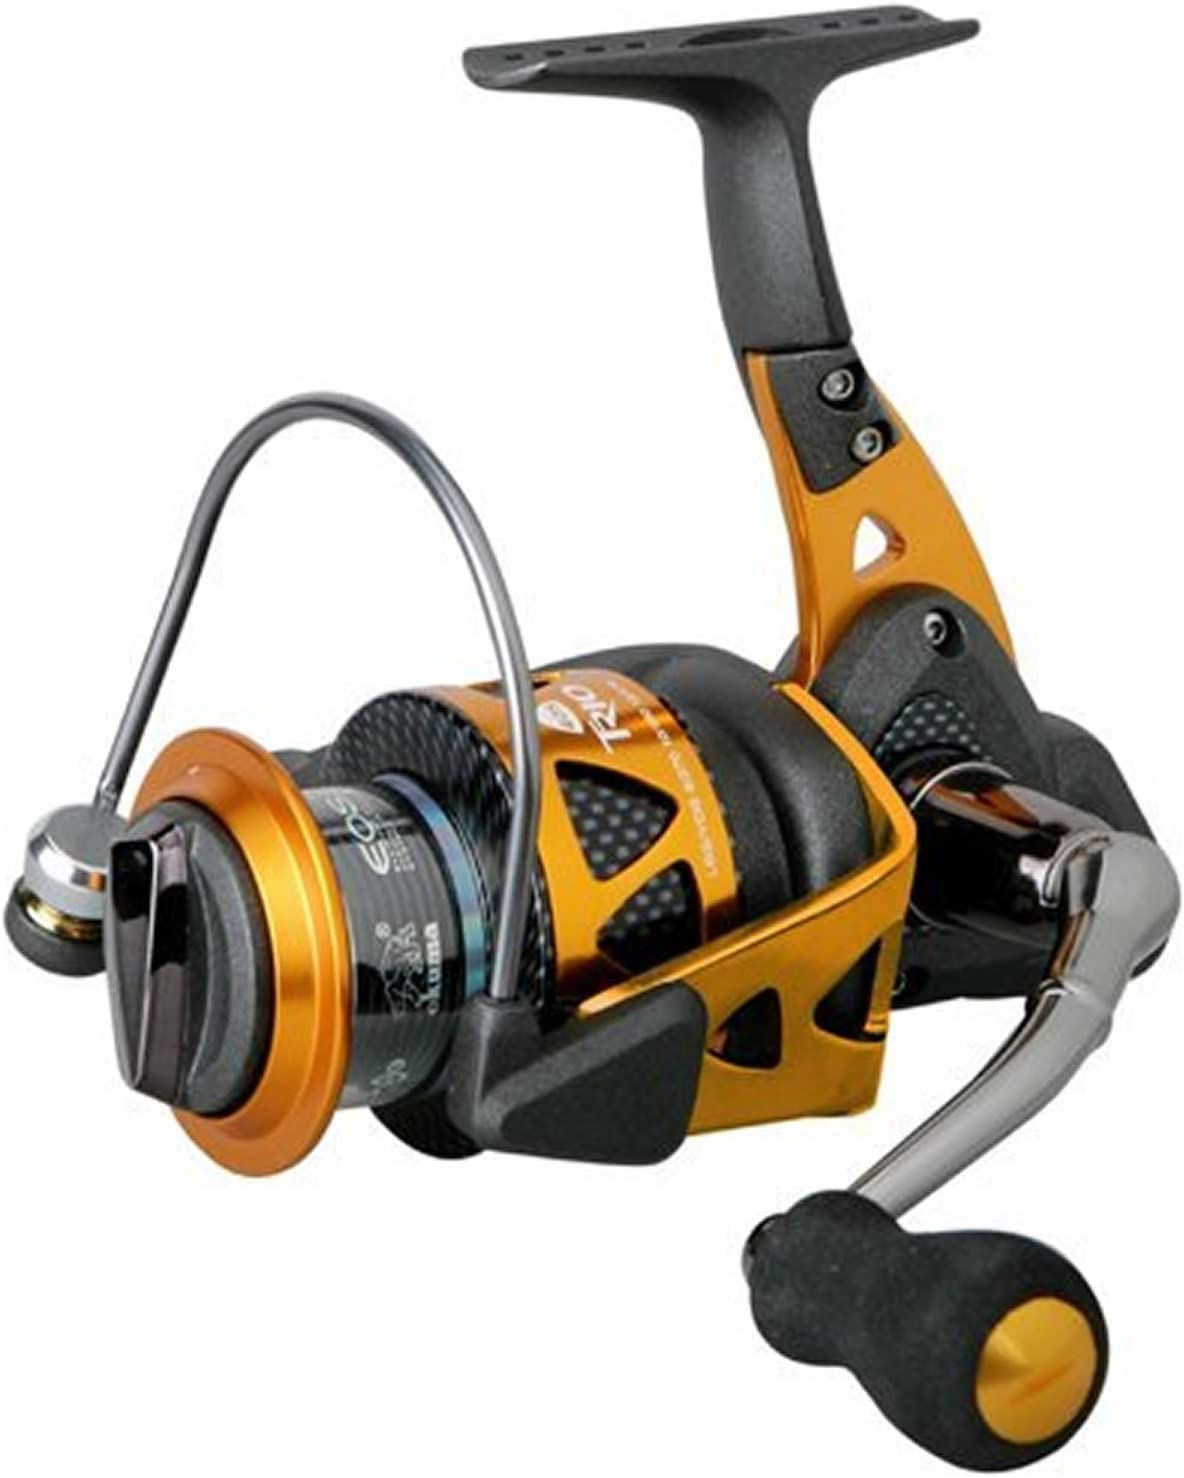 Okuma Trio High Speed Carrete Spinning de Pesca, Unisex Adulto ...